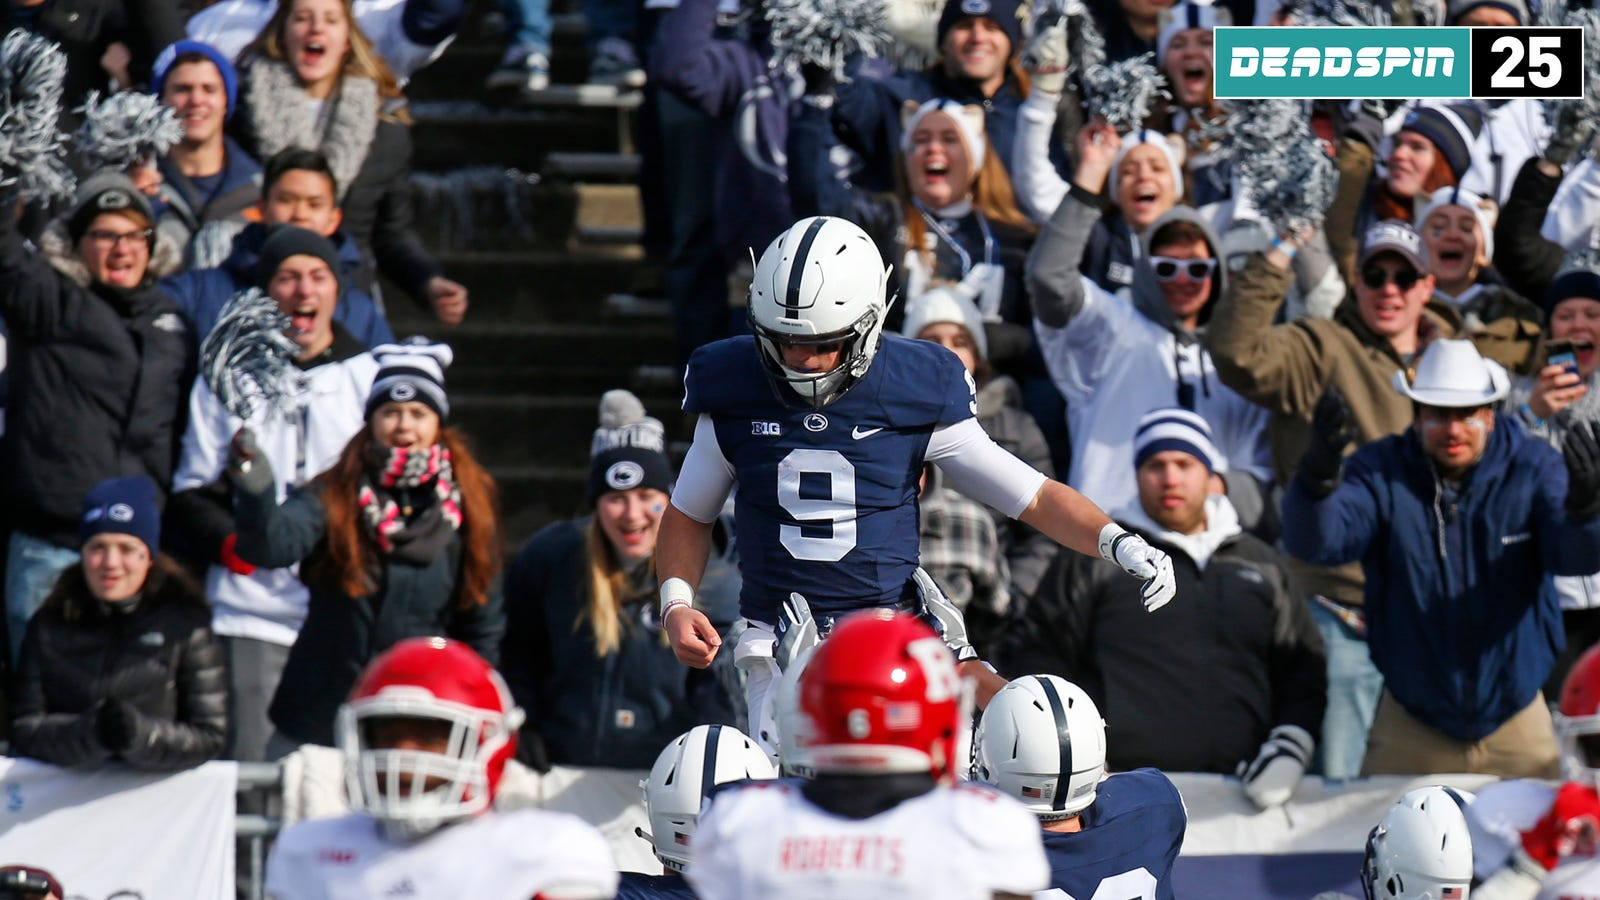 Penn State Lost A Certified Demigod And It's Still Going To Be Great